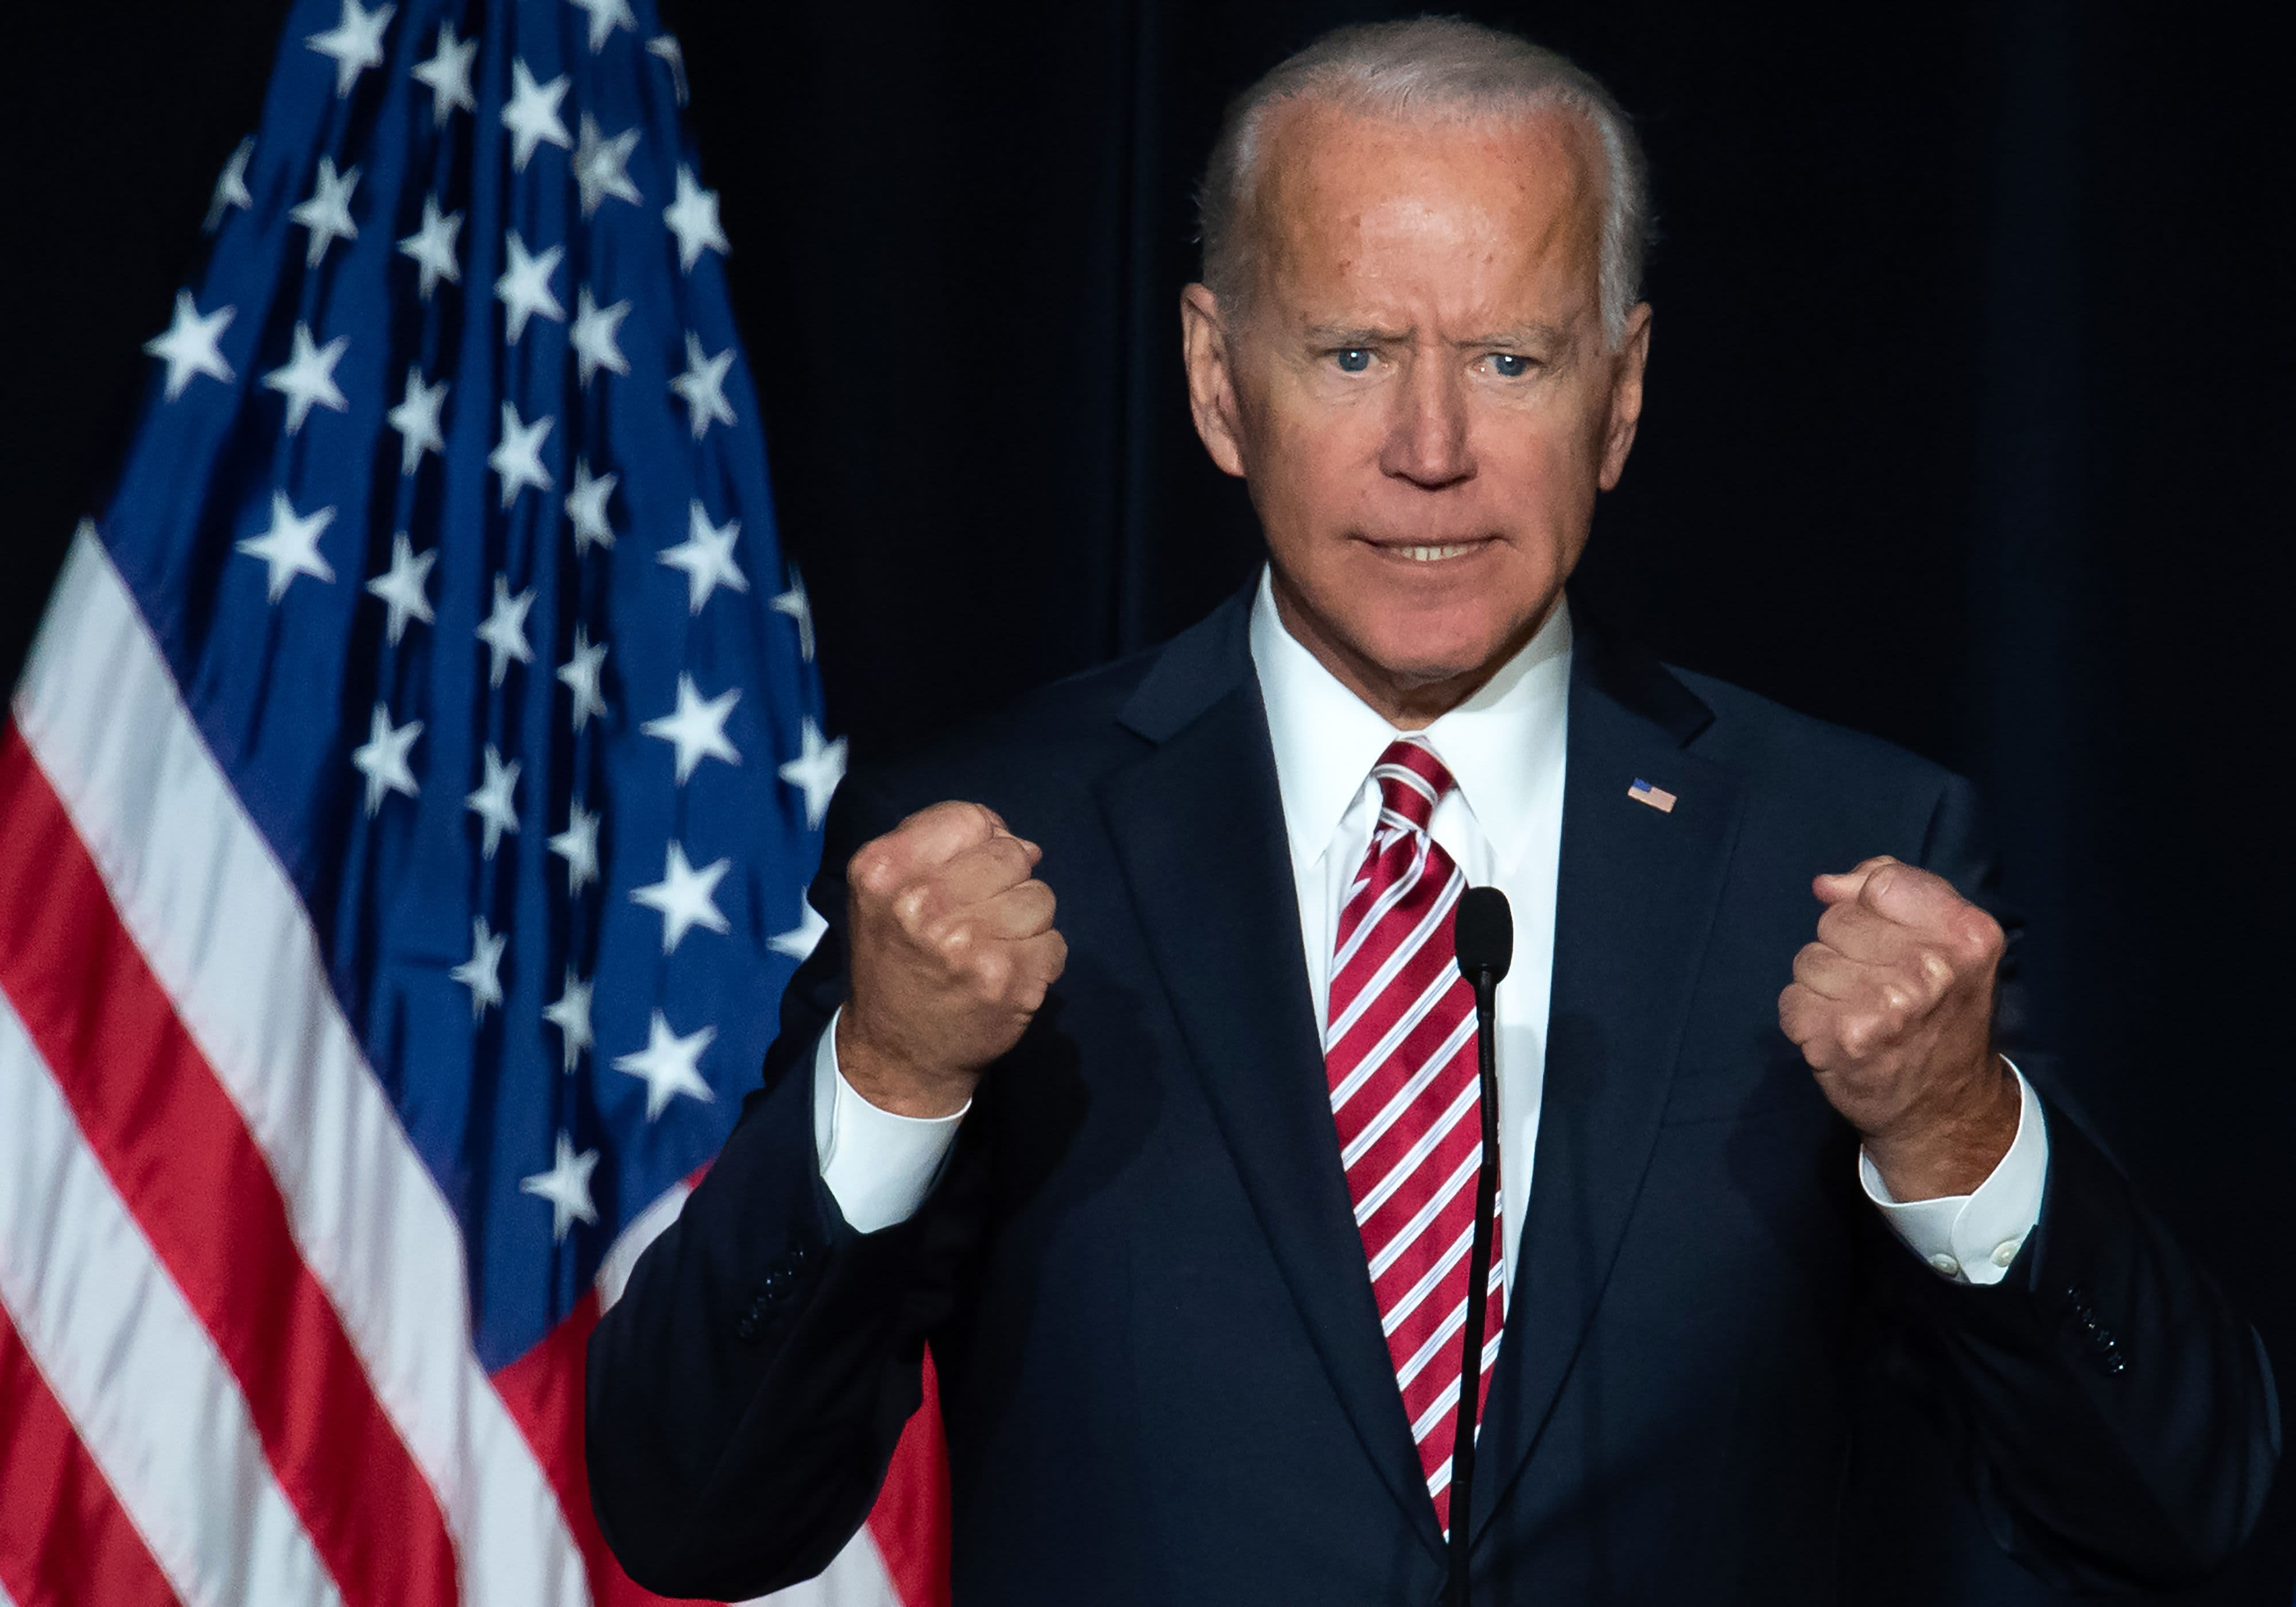 Joe Biden parody website is beating official campaign site on Google